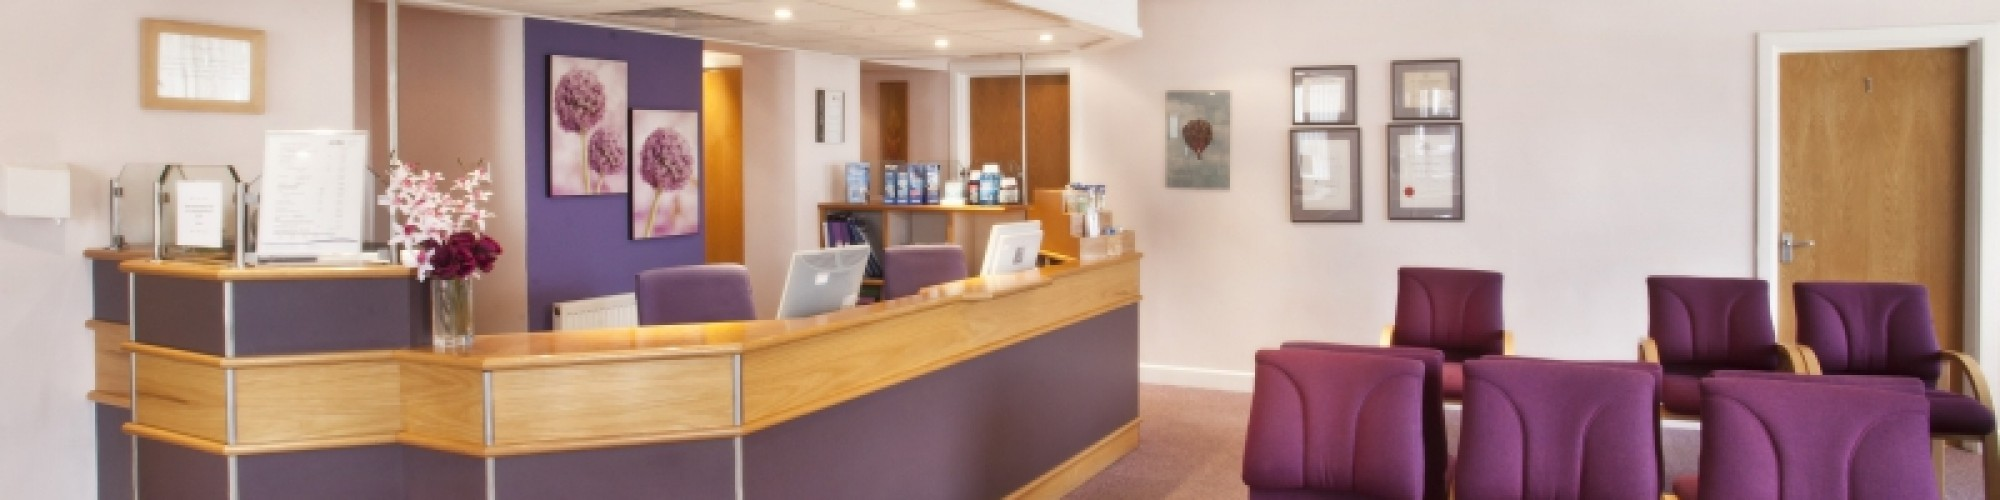 Poppleton Dental Practice Waiting Room 3